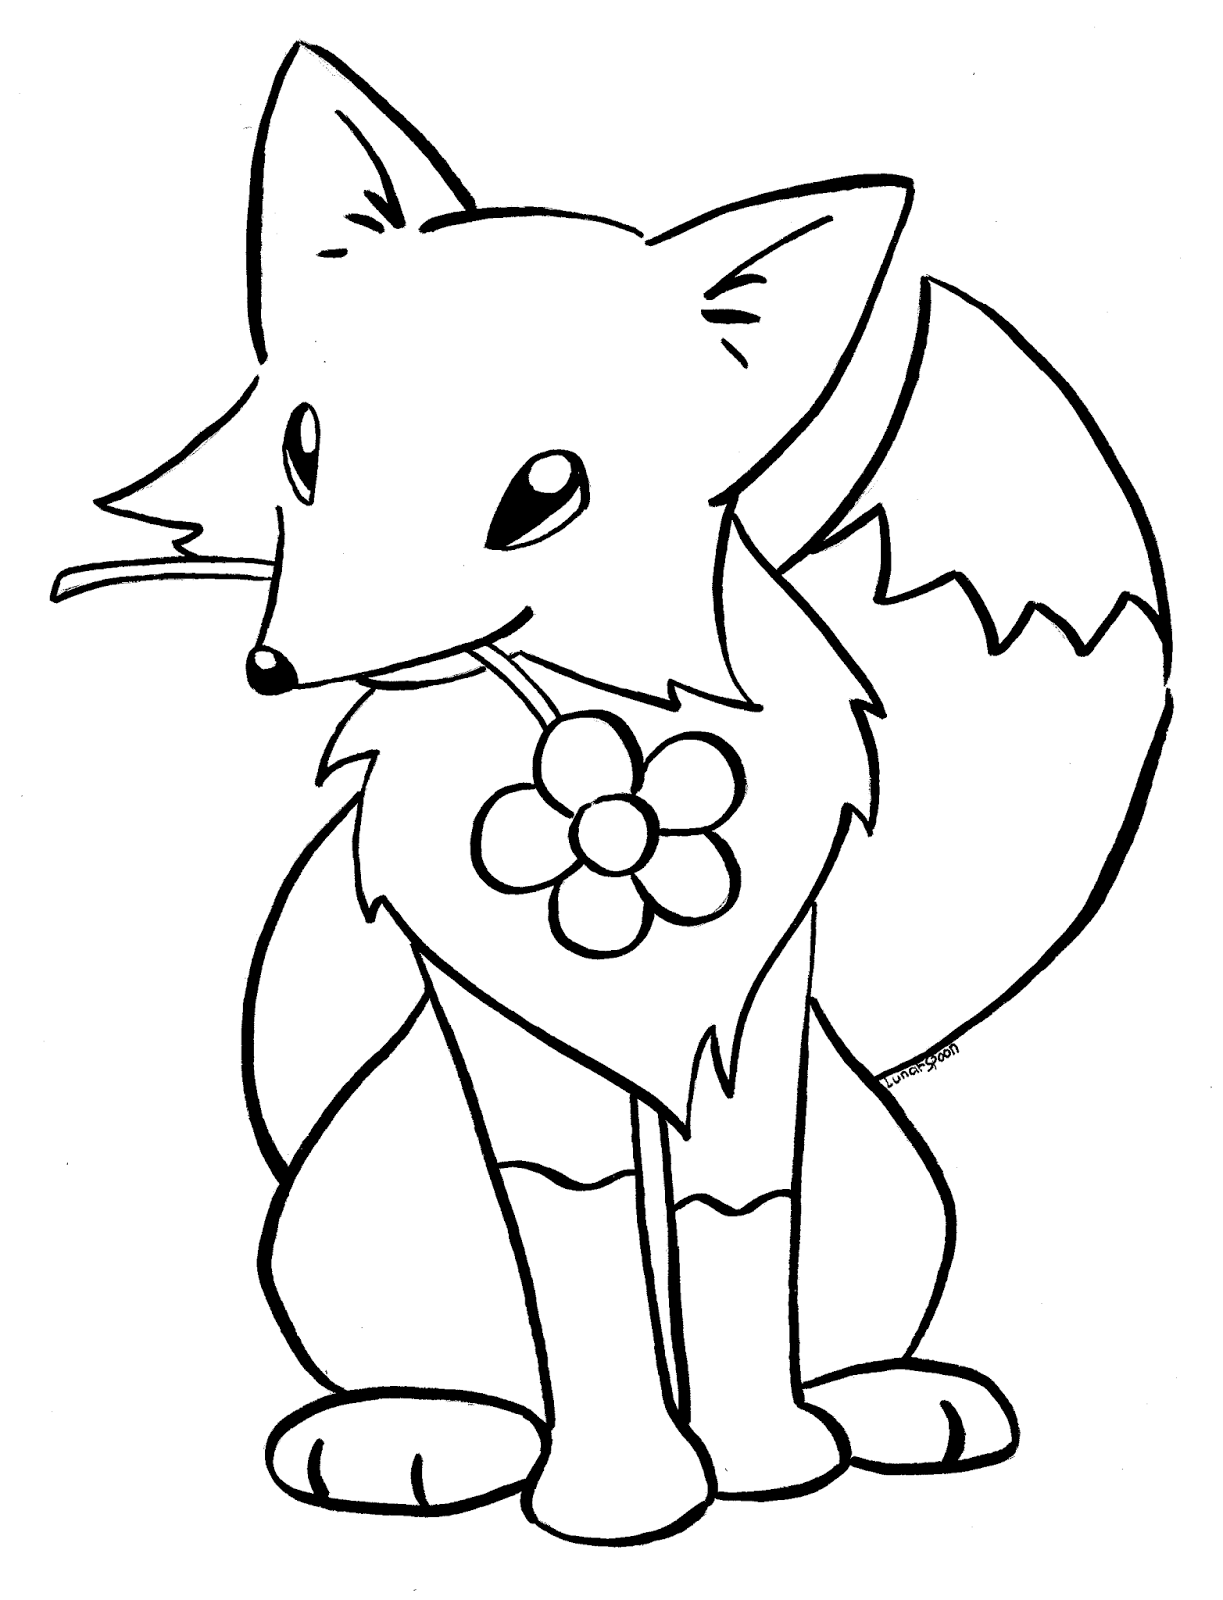 free easy coloring pages free printable abstract coloring pages for adults easy coloring pages free